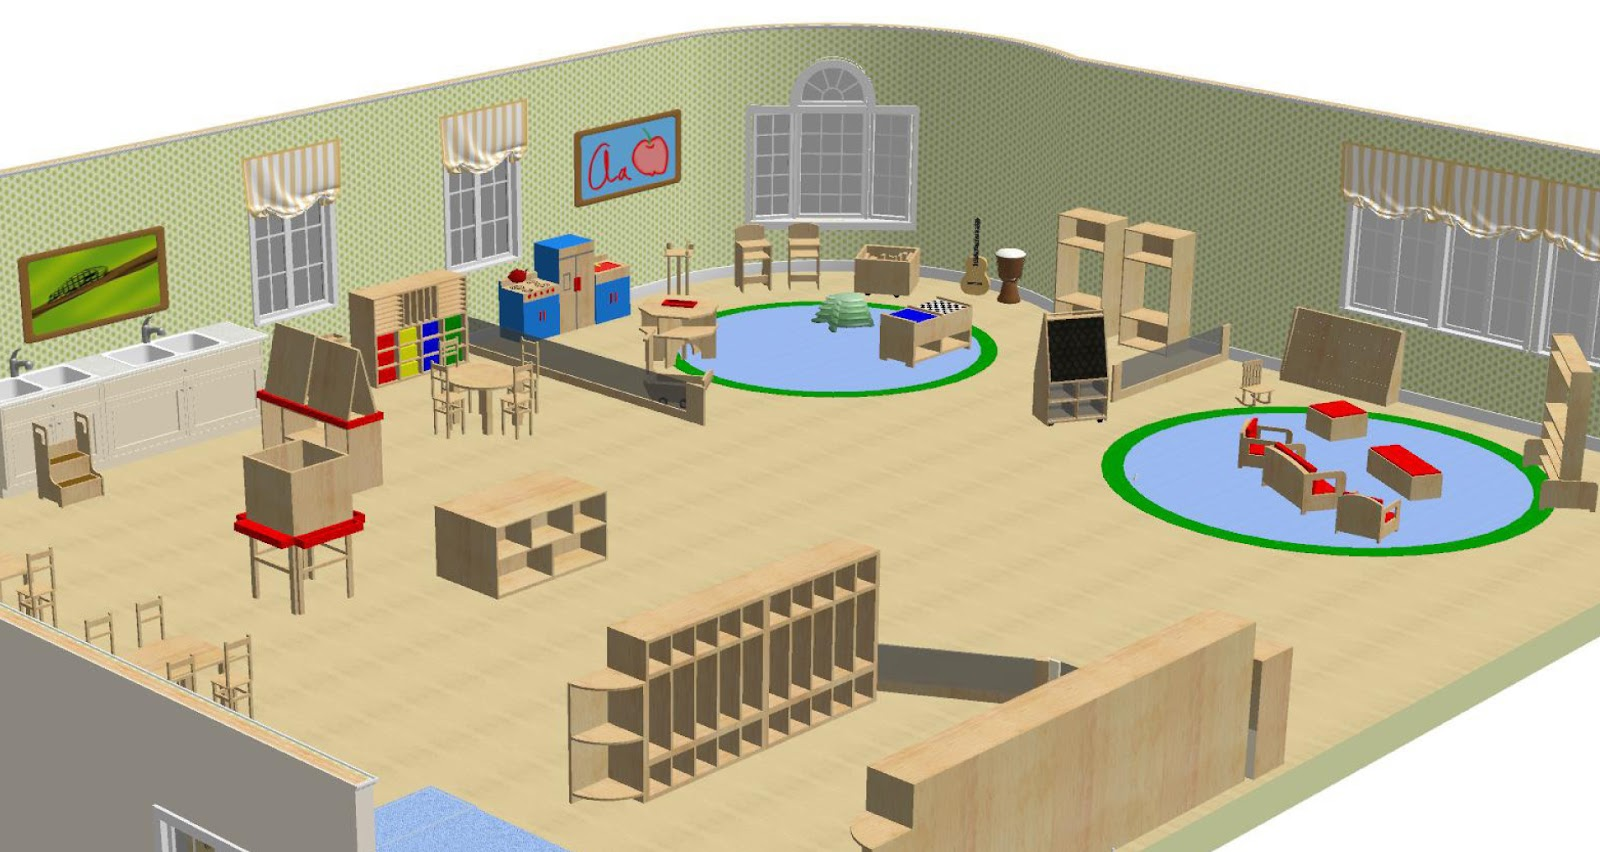 Scale Up Classroom Design And Use Can Facilitate Learning ~ Wood designs